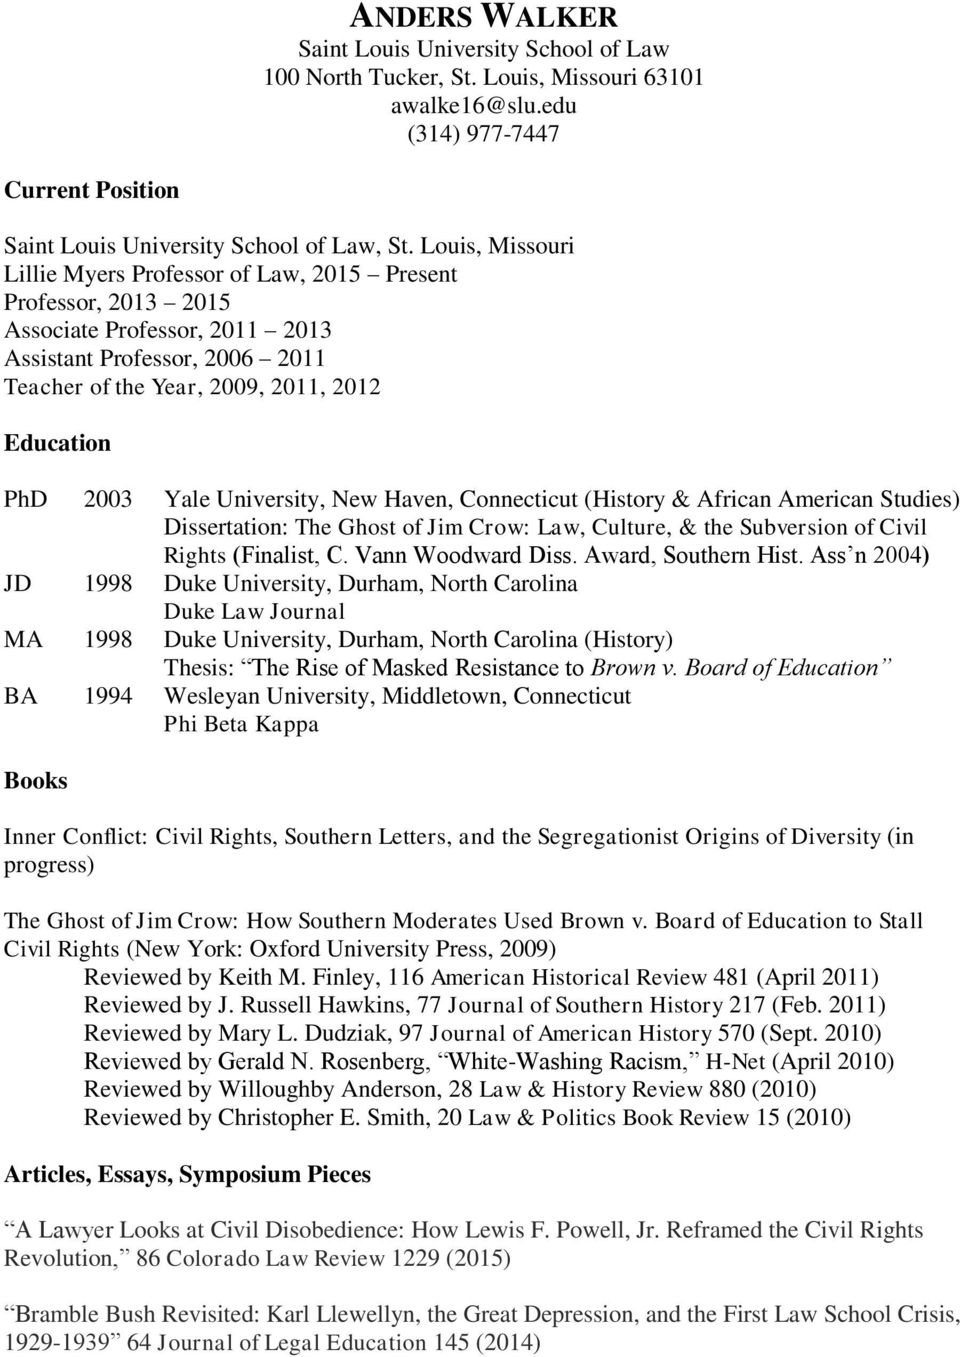 Yale University, New Haven, Connecticut (History & African American Studies) Dissertation: The Ghost of Jim Crow: Law, Culture, & the Subversion of Civil Rights (Finalist, C. Vann Woodward Diss.